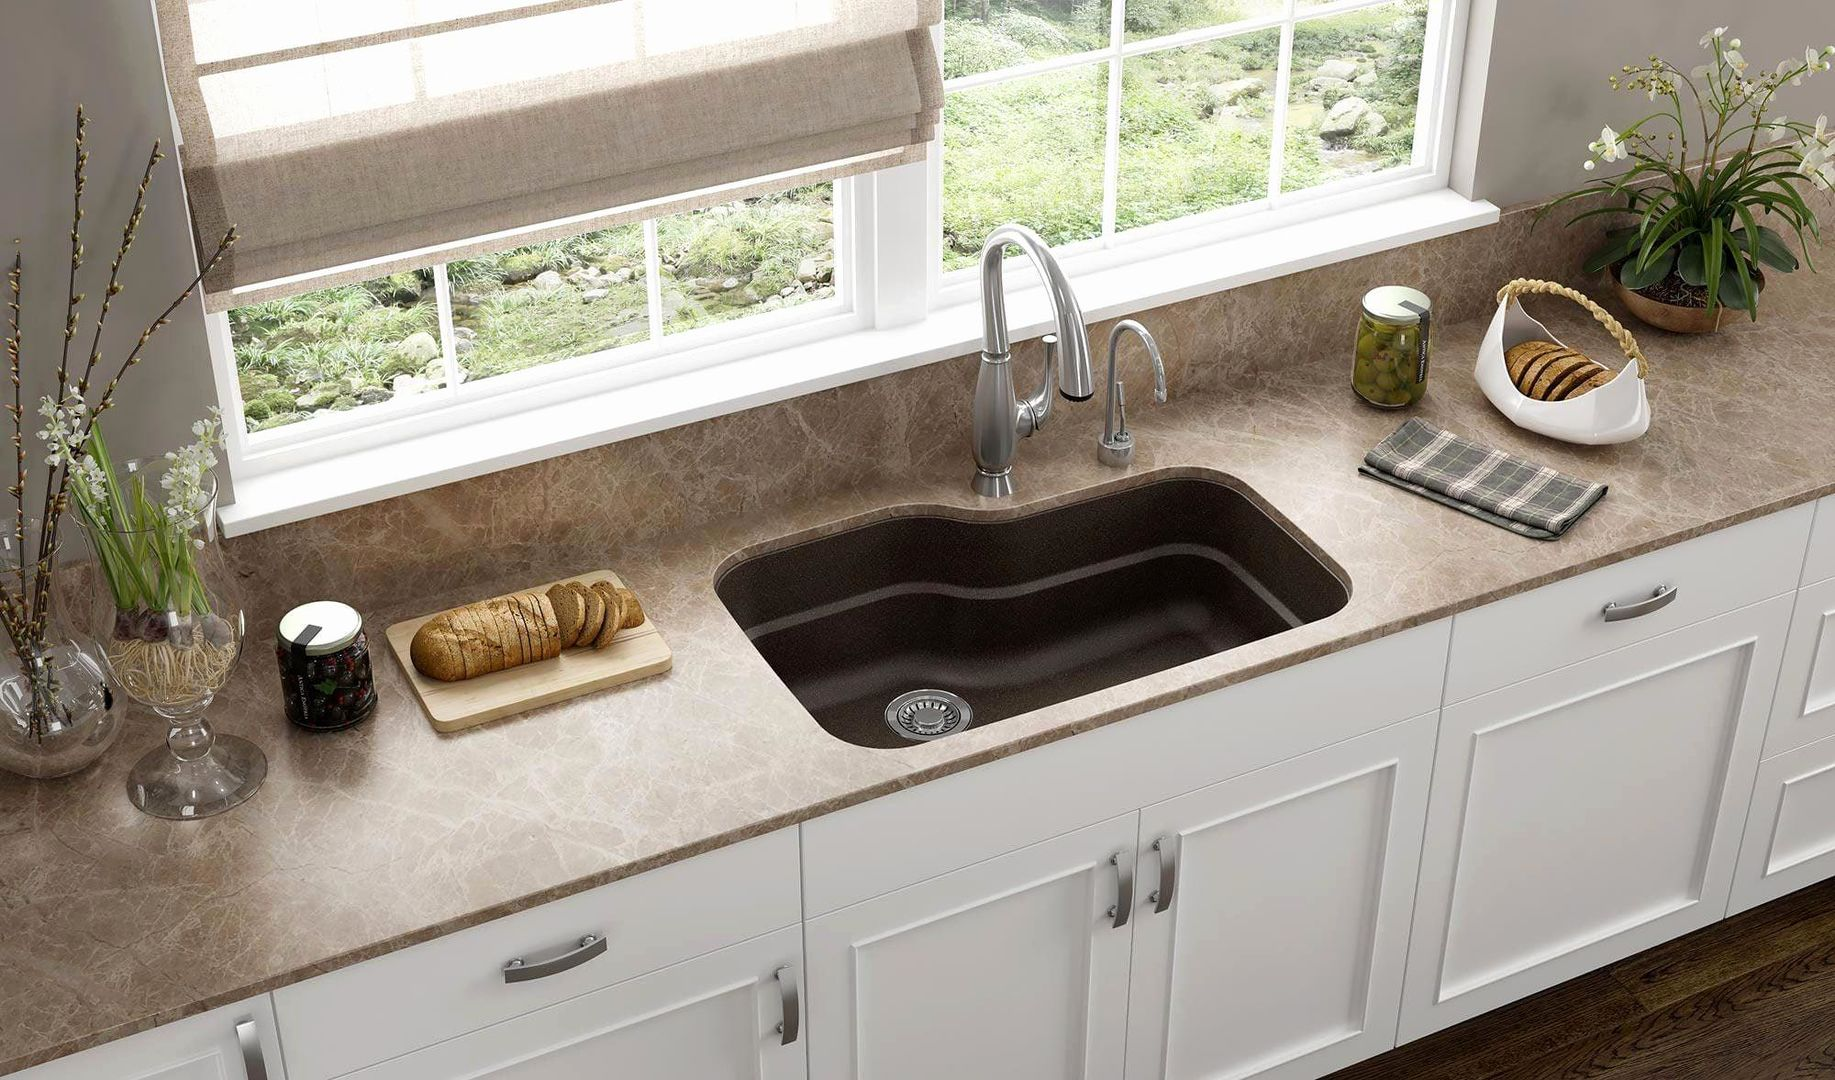 Effective Tips in Cleaning Your Kitchen Sink